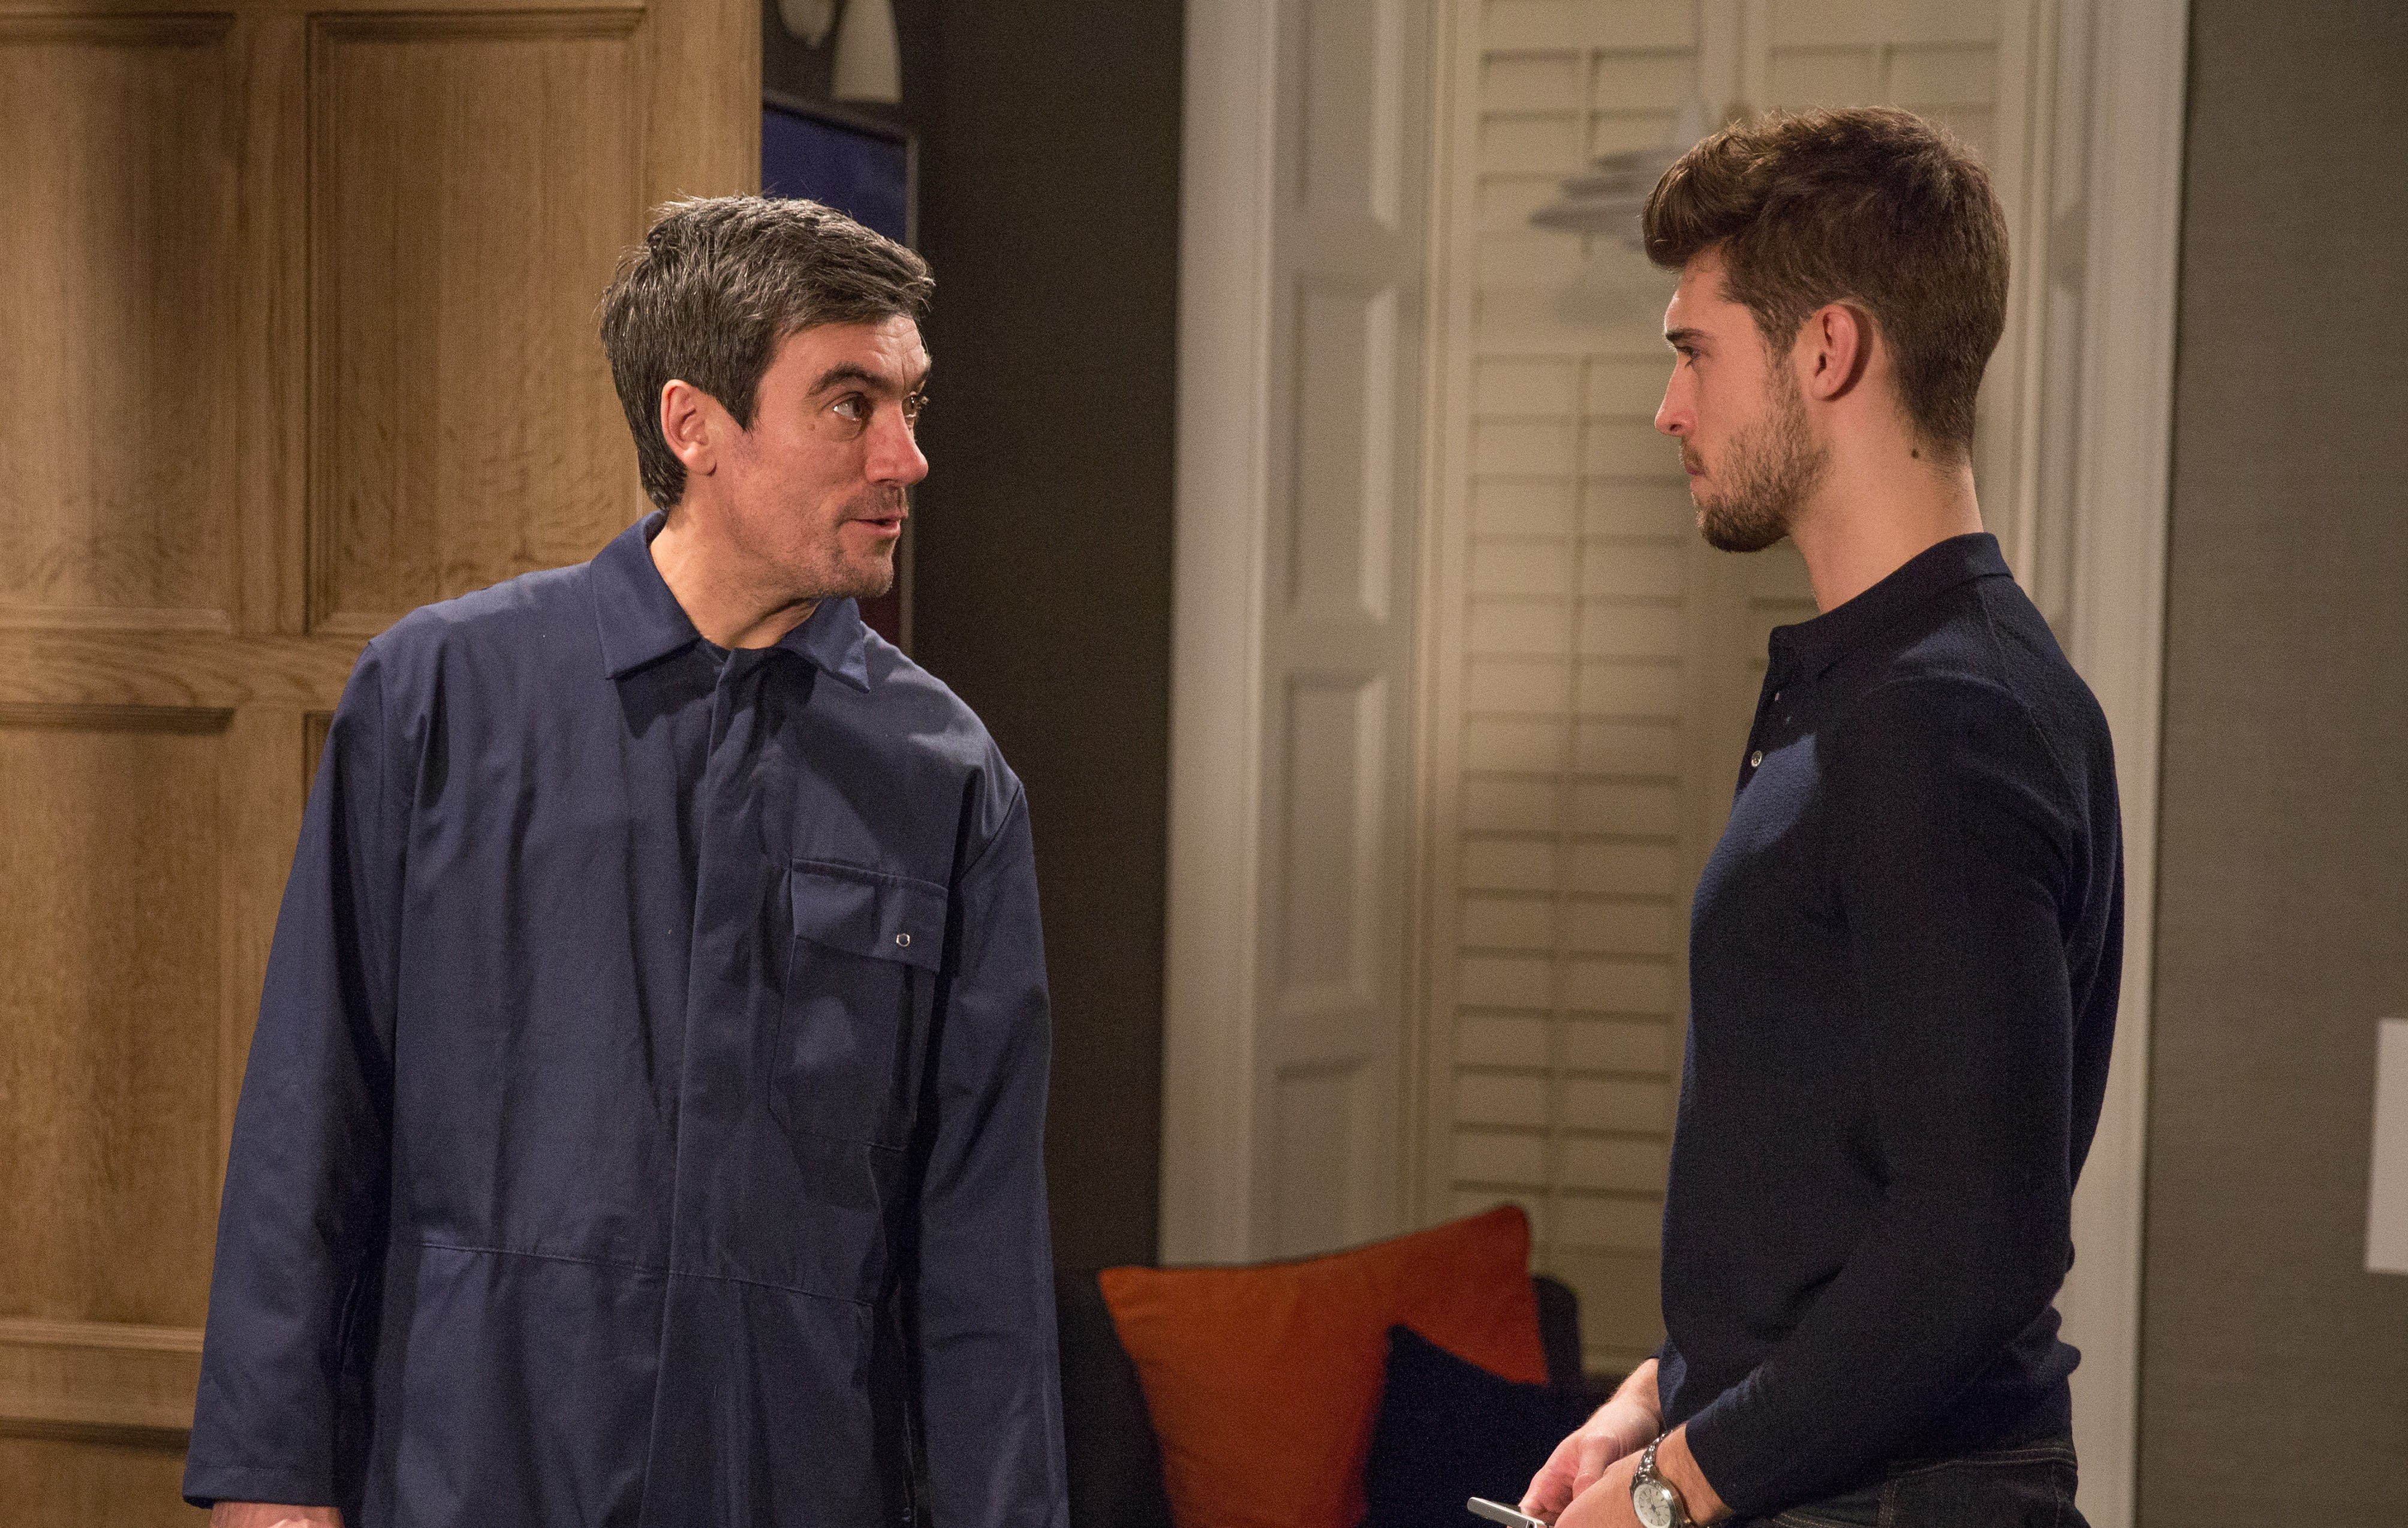 FROM ITV STRICT EMBARGO Print media - No Use Before Tuesday 13 March  2018Online Media -  No Use Before 0700hrs Tuesday 13 March 2018Emmerdale - Ep 8103Thursday 22 March 2018 - 2nd EpWhat does Cain Dingle [JEFF HORDLEY] have planned for Joe Tate [NED PORTEOUS]? Picture contact - david.crook@itv.comPhotographer - Amy BrammallThis photograph is (C) ITV Plc and can only be reproduced for editorial purposes directly in connection with the programme or event mentioned above, or ITV plc. Once made available by ITV plc Picture Desk, this photograph can be reproduced once only up until the transmission [TX] date and no reproduction fee will be charged. Any subsequent usage may incur a fee. This photograph must not be manipulated [excluding basic cropping] in a manner which alters the visual appearance of the person photographed deemed detrimental or inappropriate by ITV plc Picture Desk. This photograph must not be syndicated to any other company, publication or website, or permanently archived, without the express written permission of ITV Plc Picture Desk. Full Terms and conditions are available on the website www.itvpictures.com